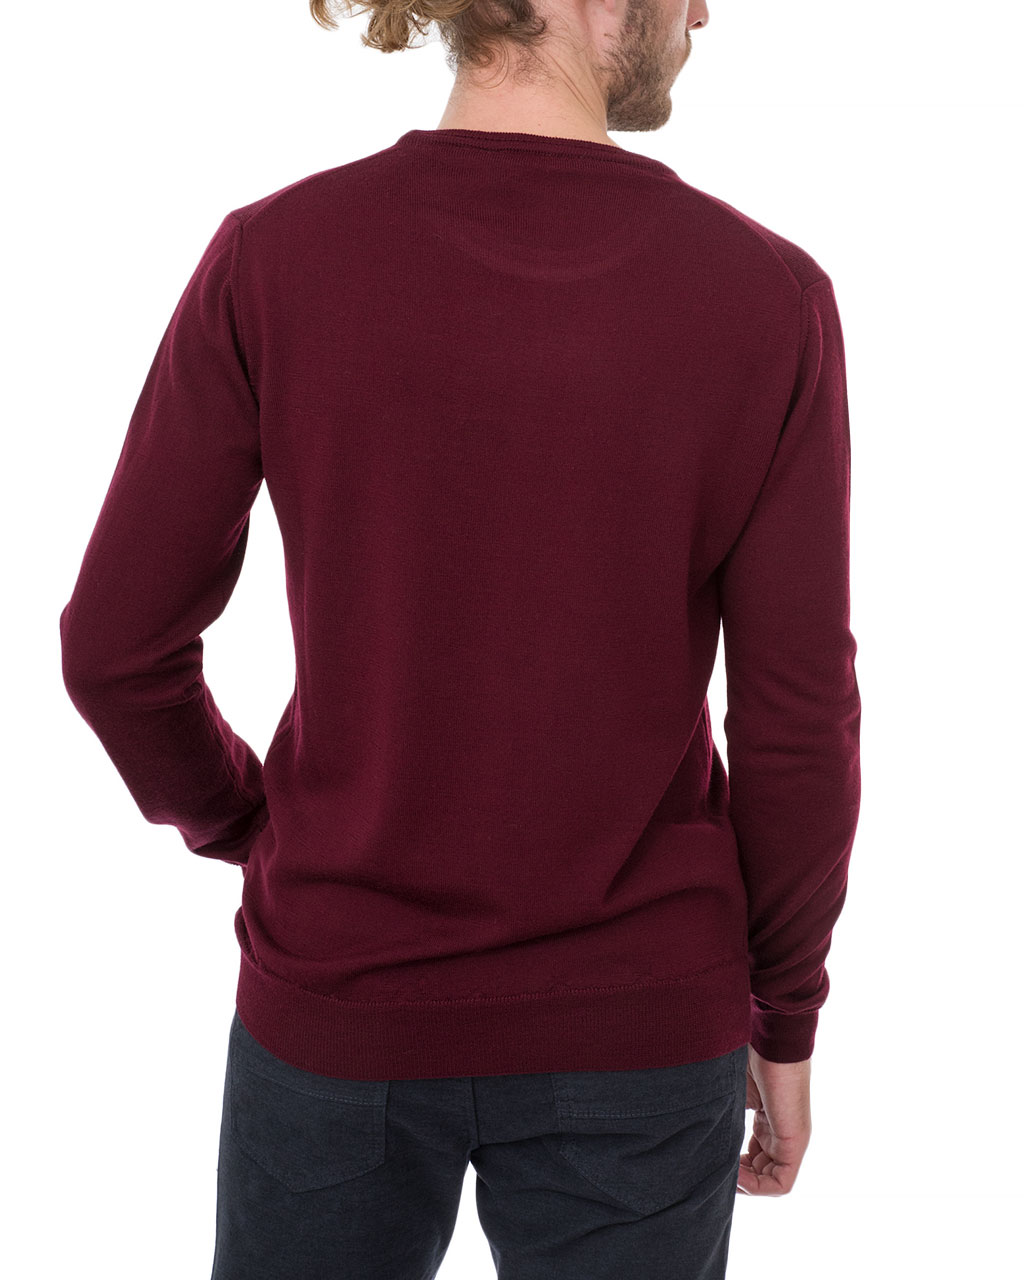 Men's jumper 52M00257-OF000422-R145/19-20 (6)